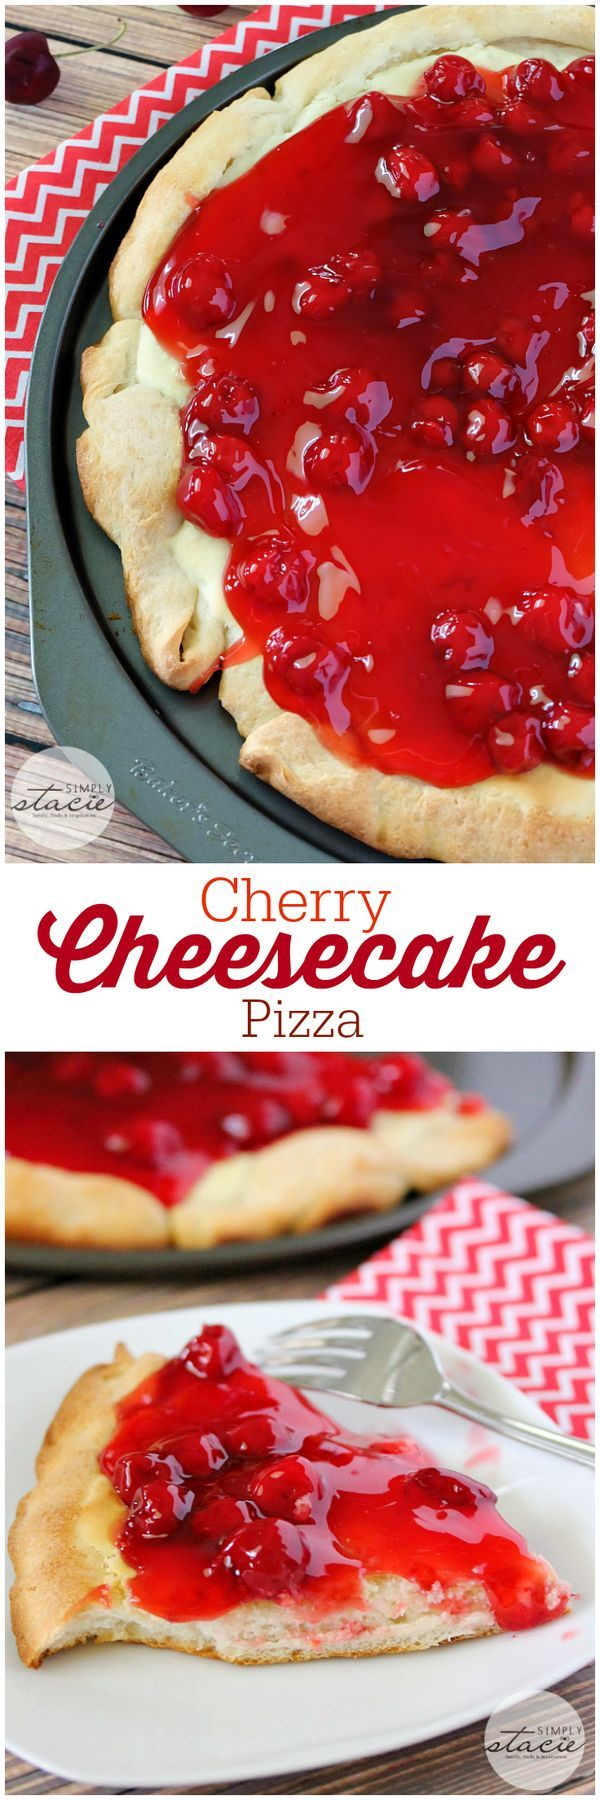 Cherry Cheesecake Pizza - sink your teeth into a creamy cheesecake layer followed by sweet cherry filling. One of the BEST dessert pizzas EVER!